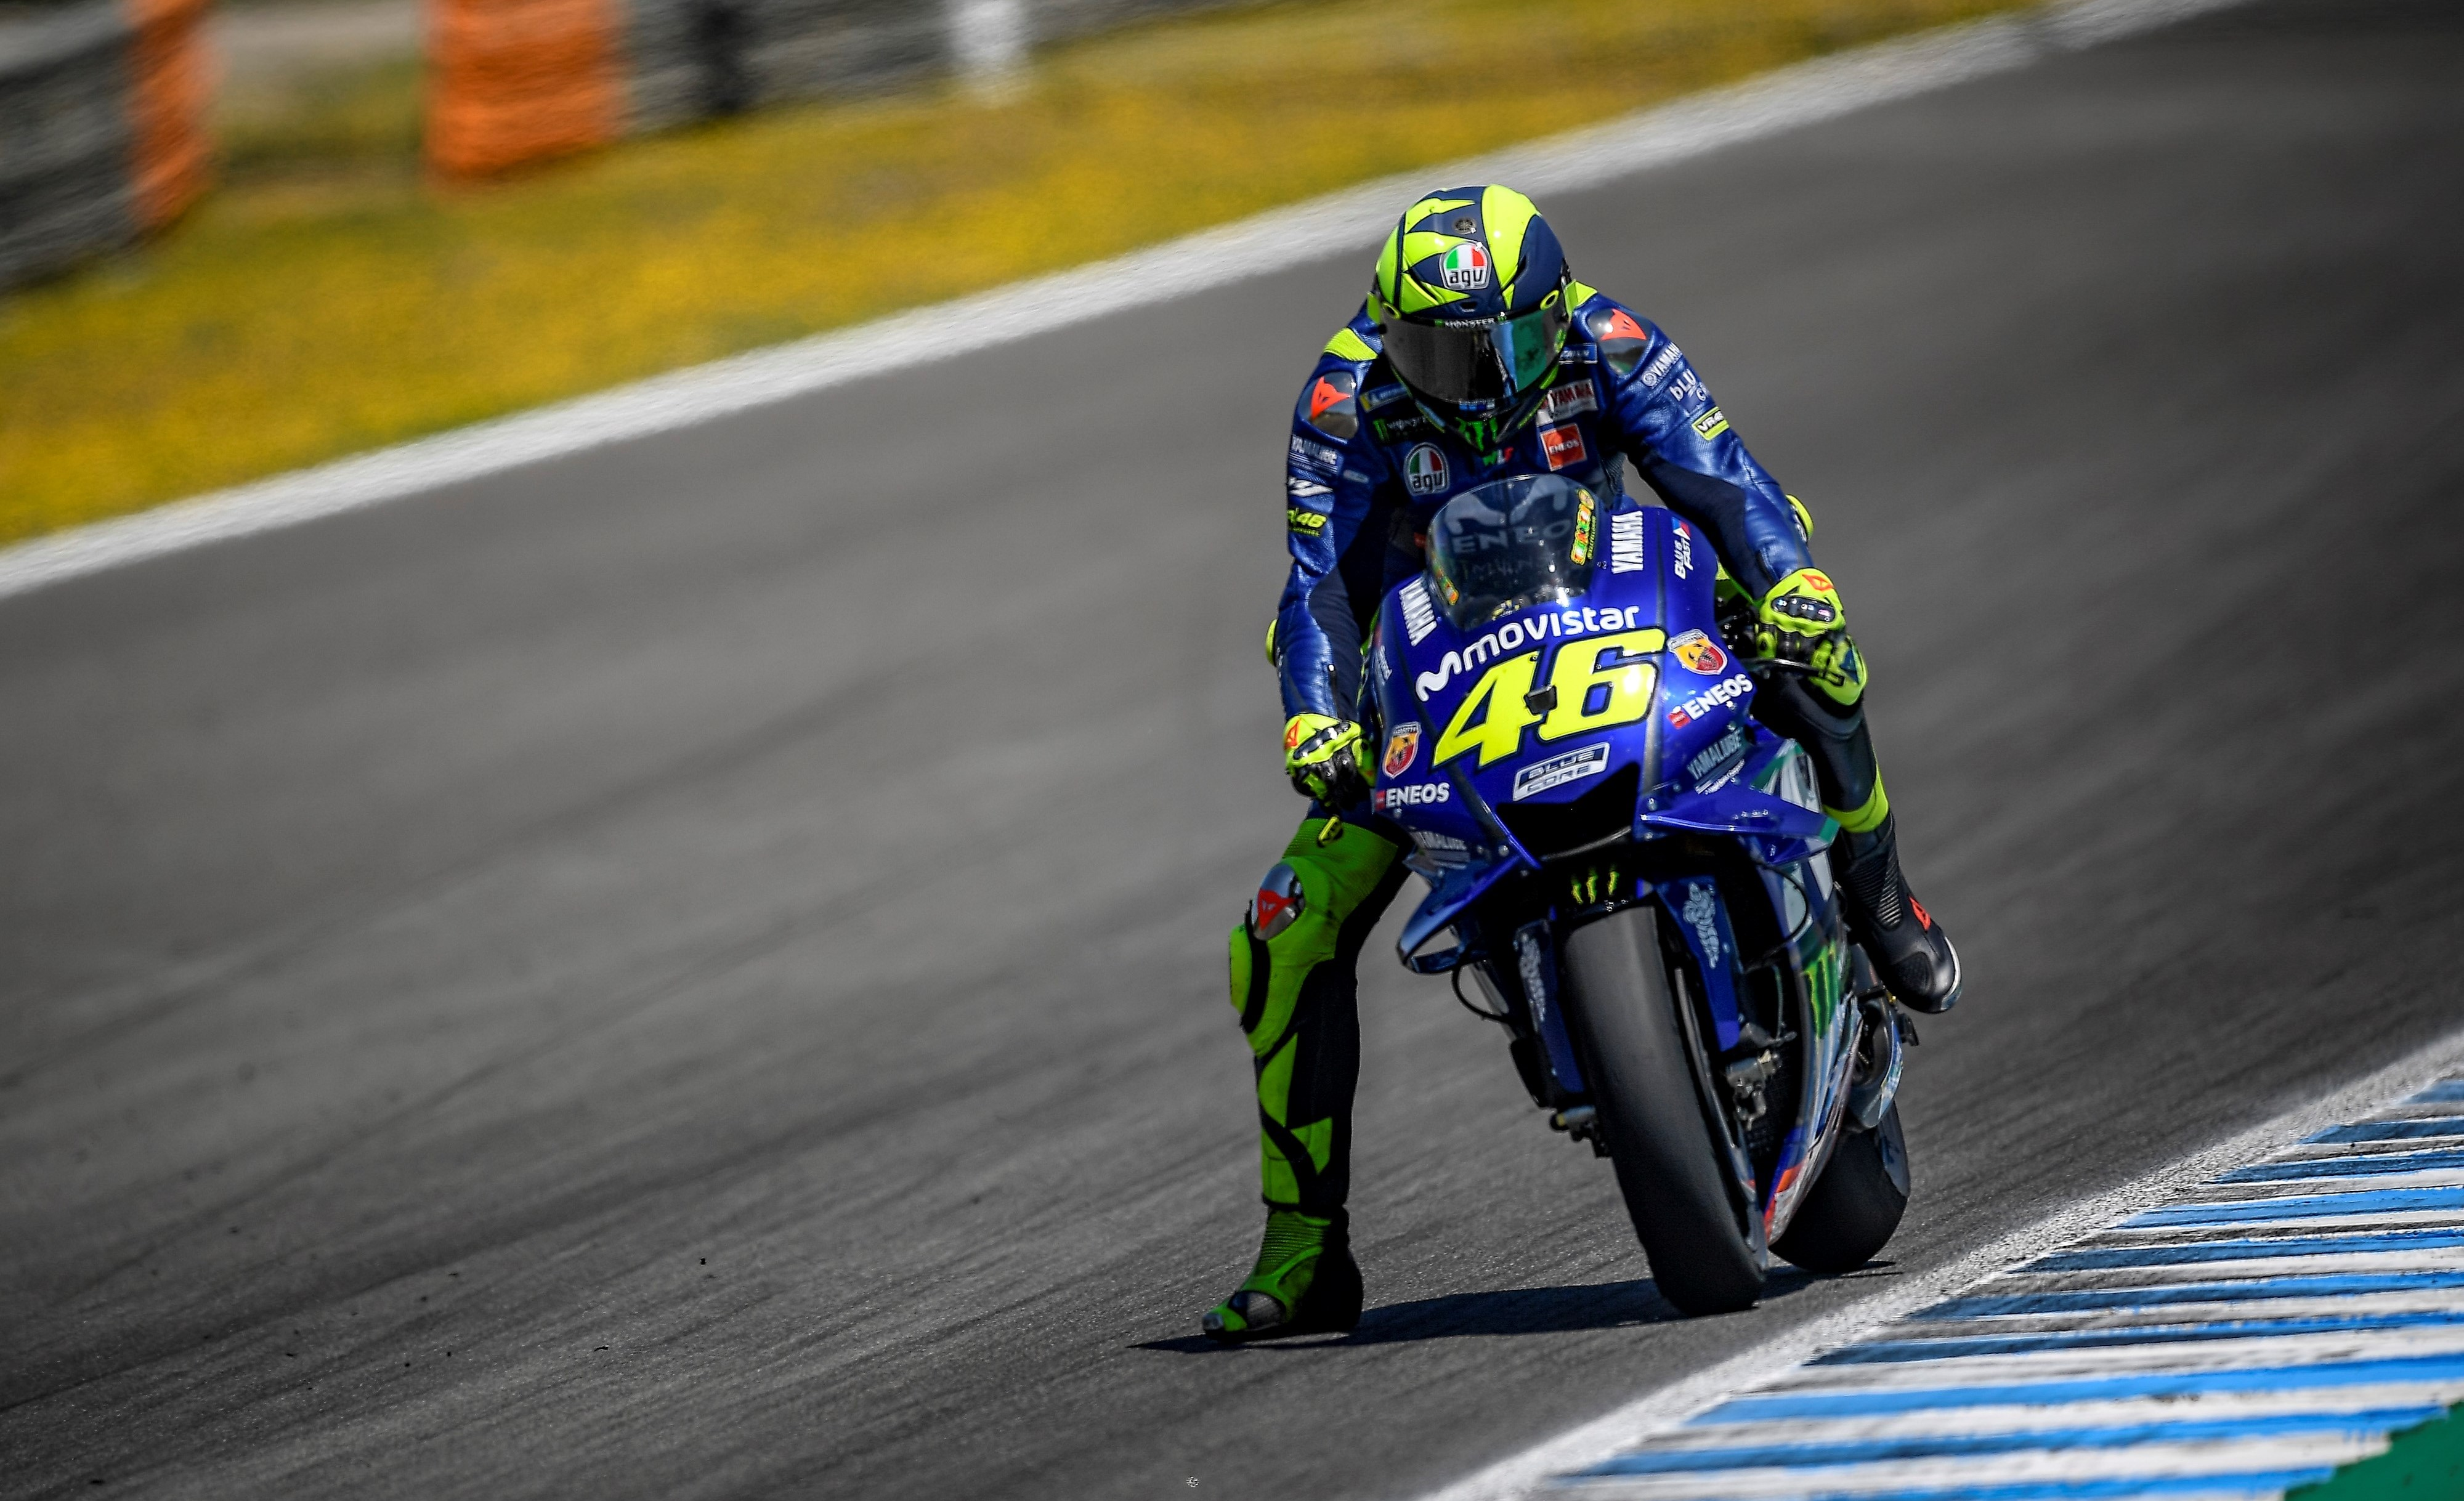 Movistar Yamaha Search for Pace in First Jerez Practice Sessions